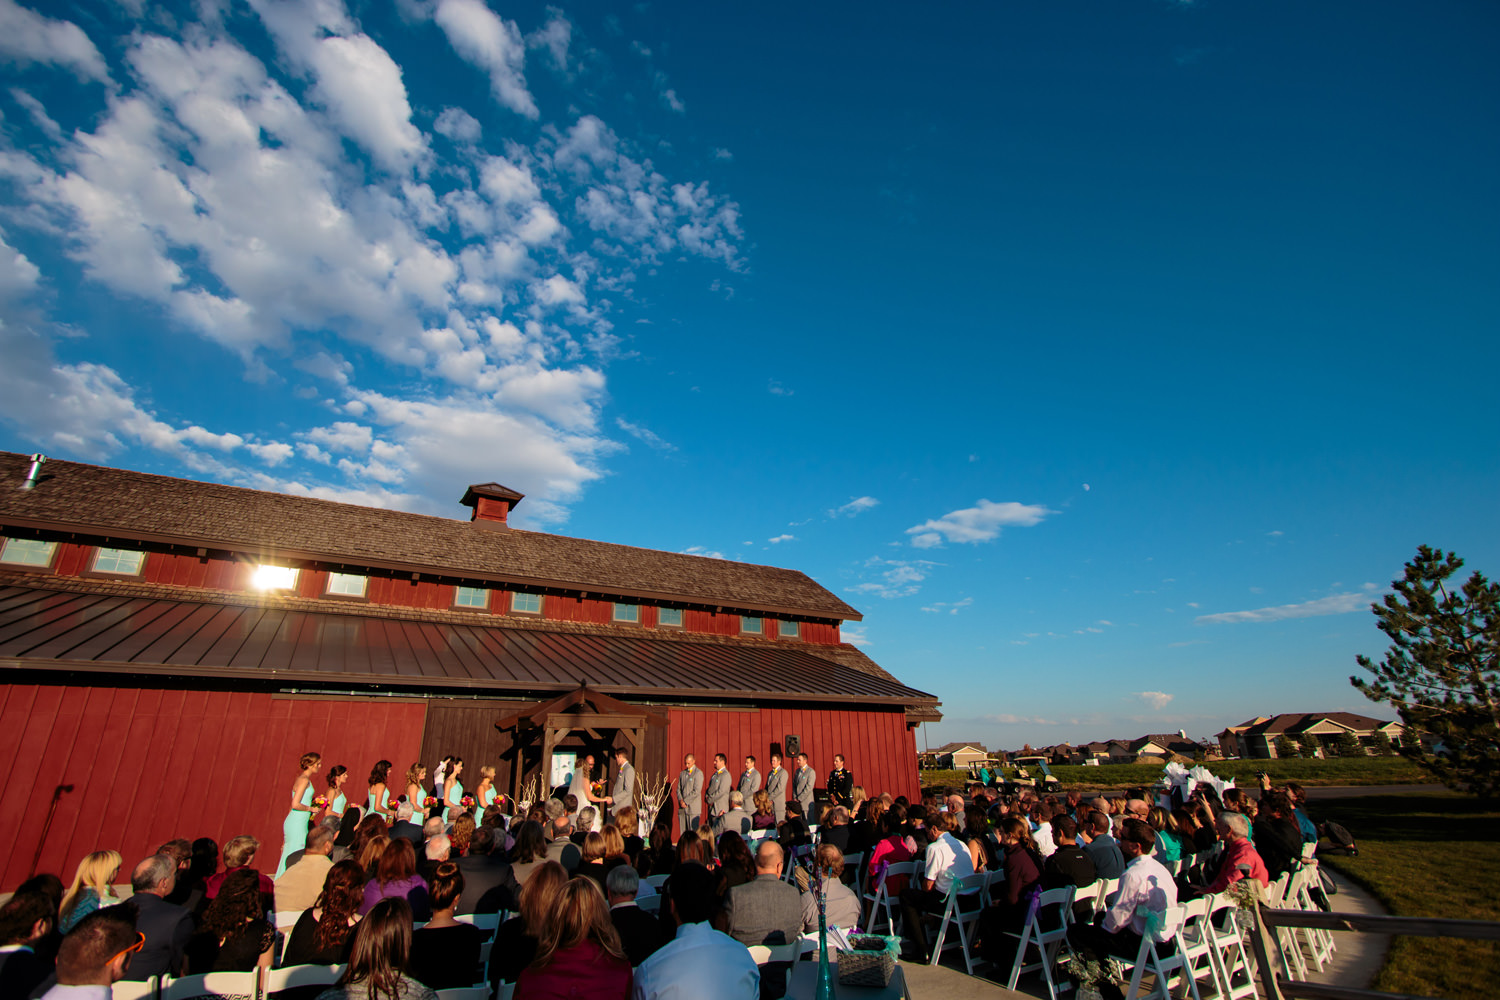 big-red-barn-highland-meadows-wedding-golfcourse-windsor032.jpg